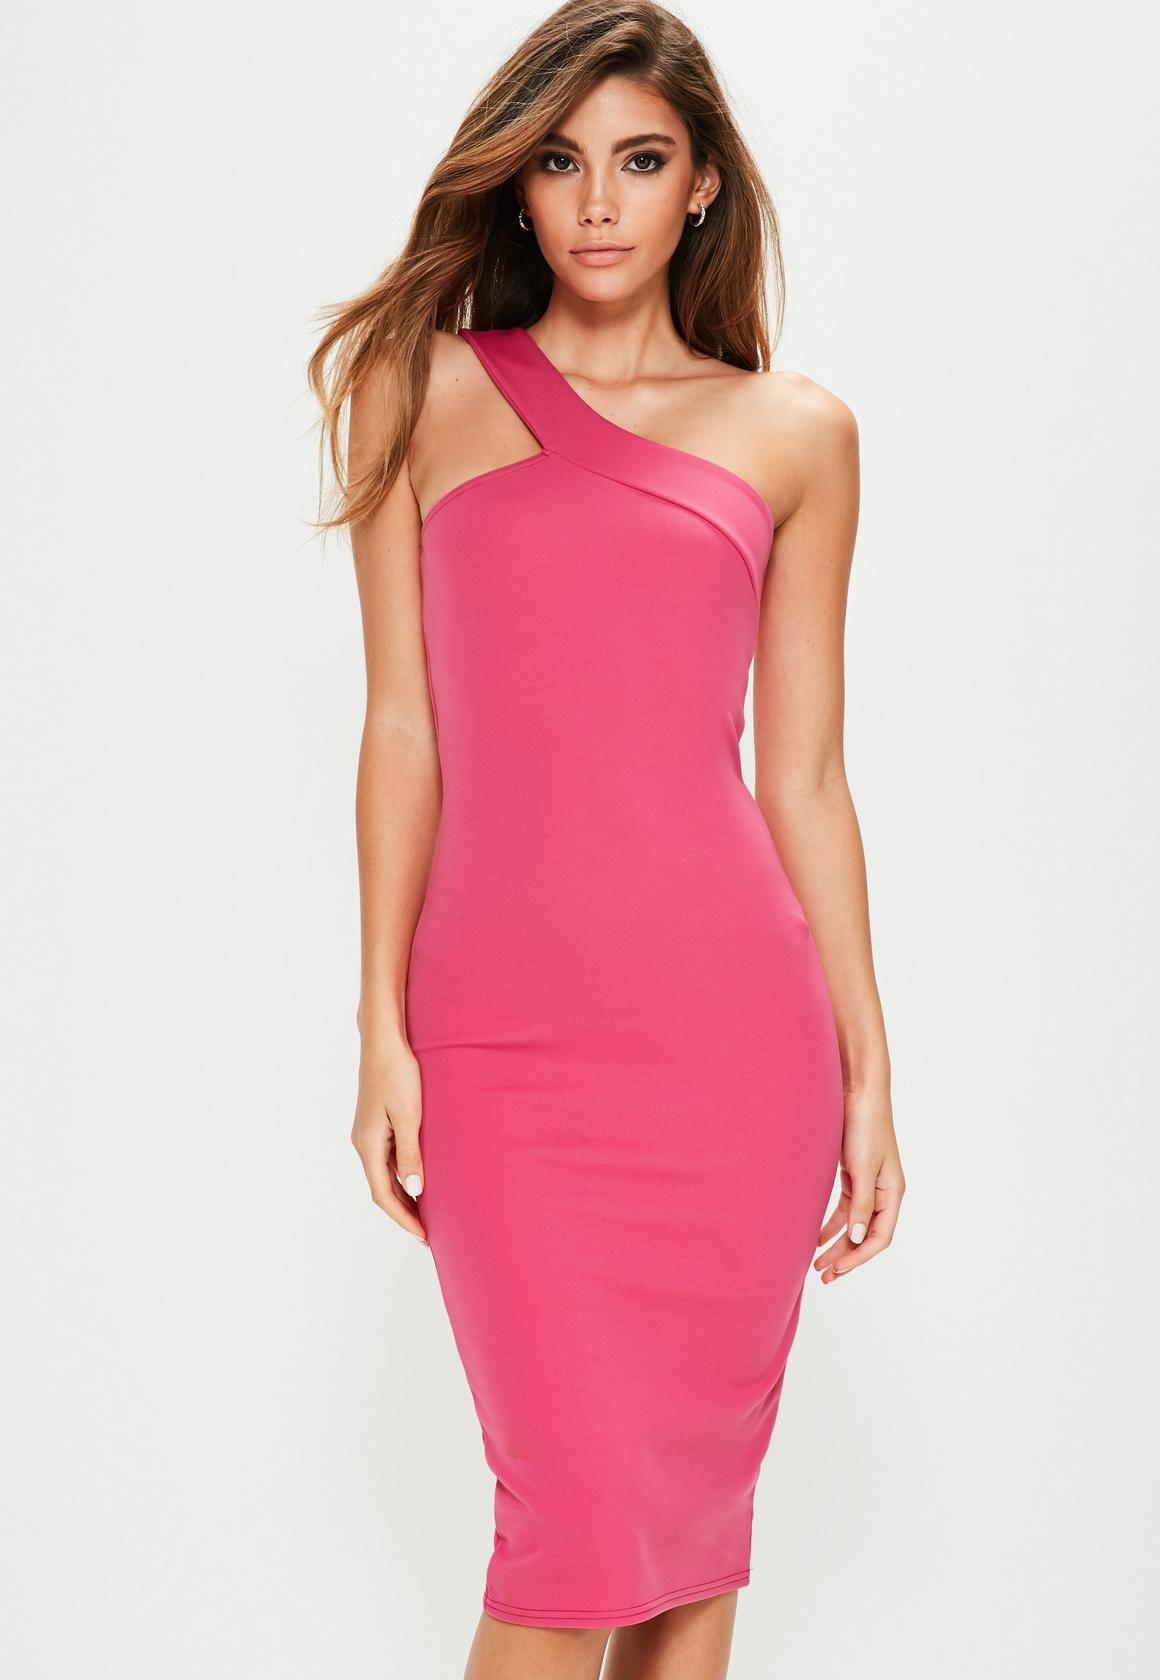 Missguided - Pink One Shoulder Asymmetric Neck Midi Dress | Dress It ...